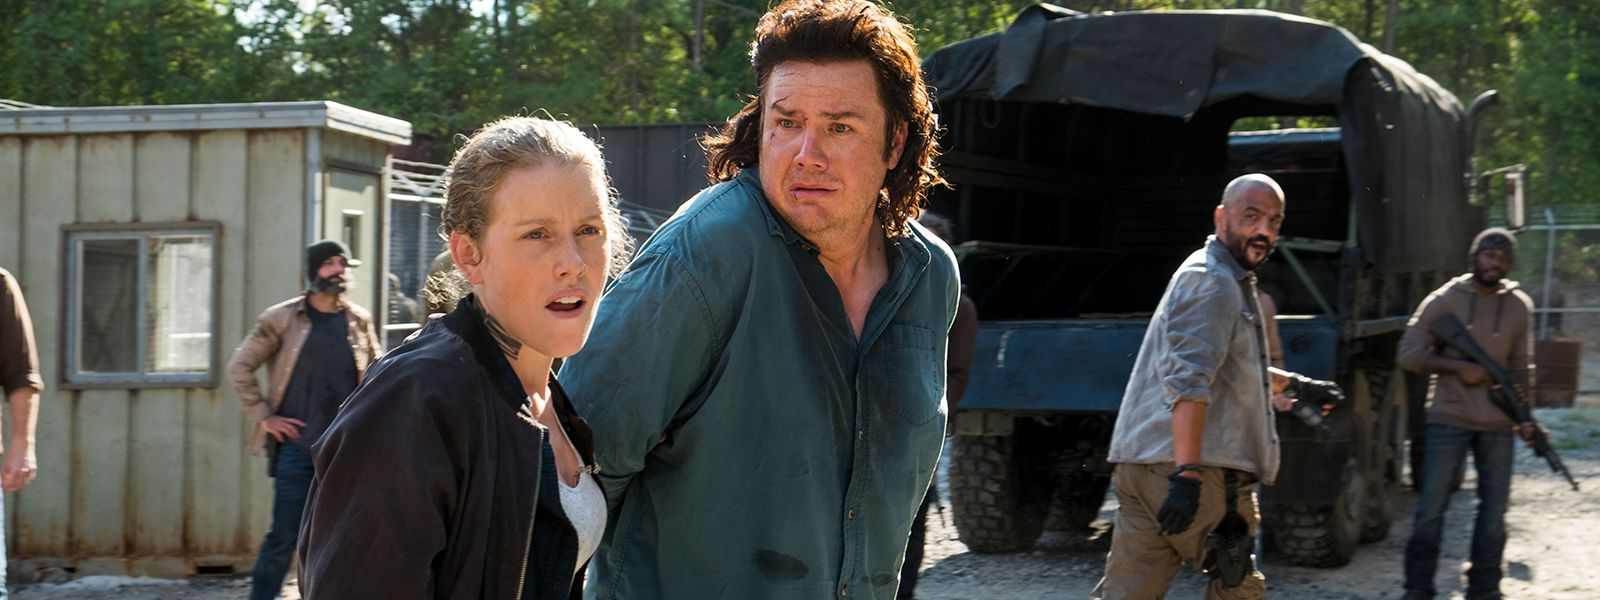 the-walking-dead-episode-711-eugene-mcdermitt-pre-800×600